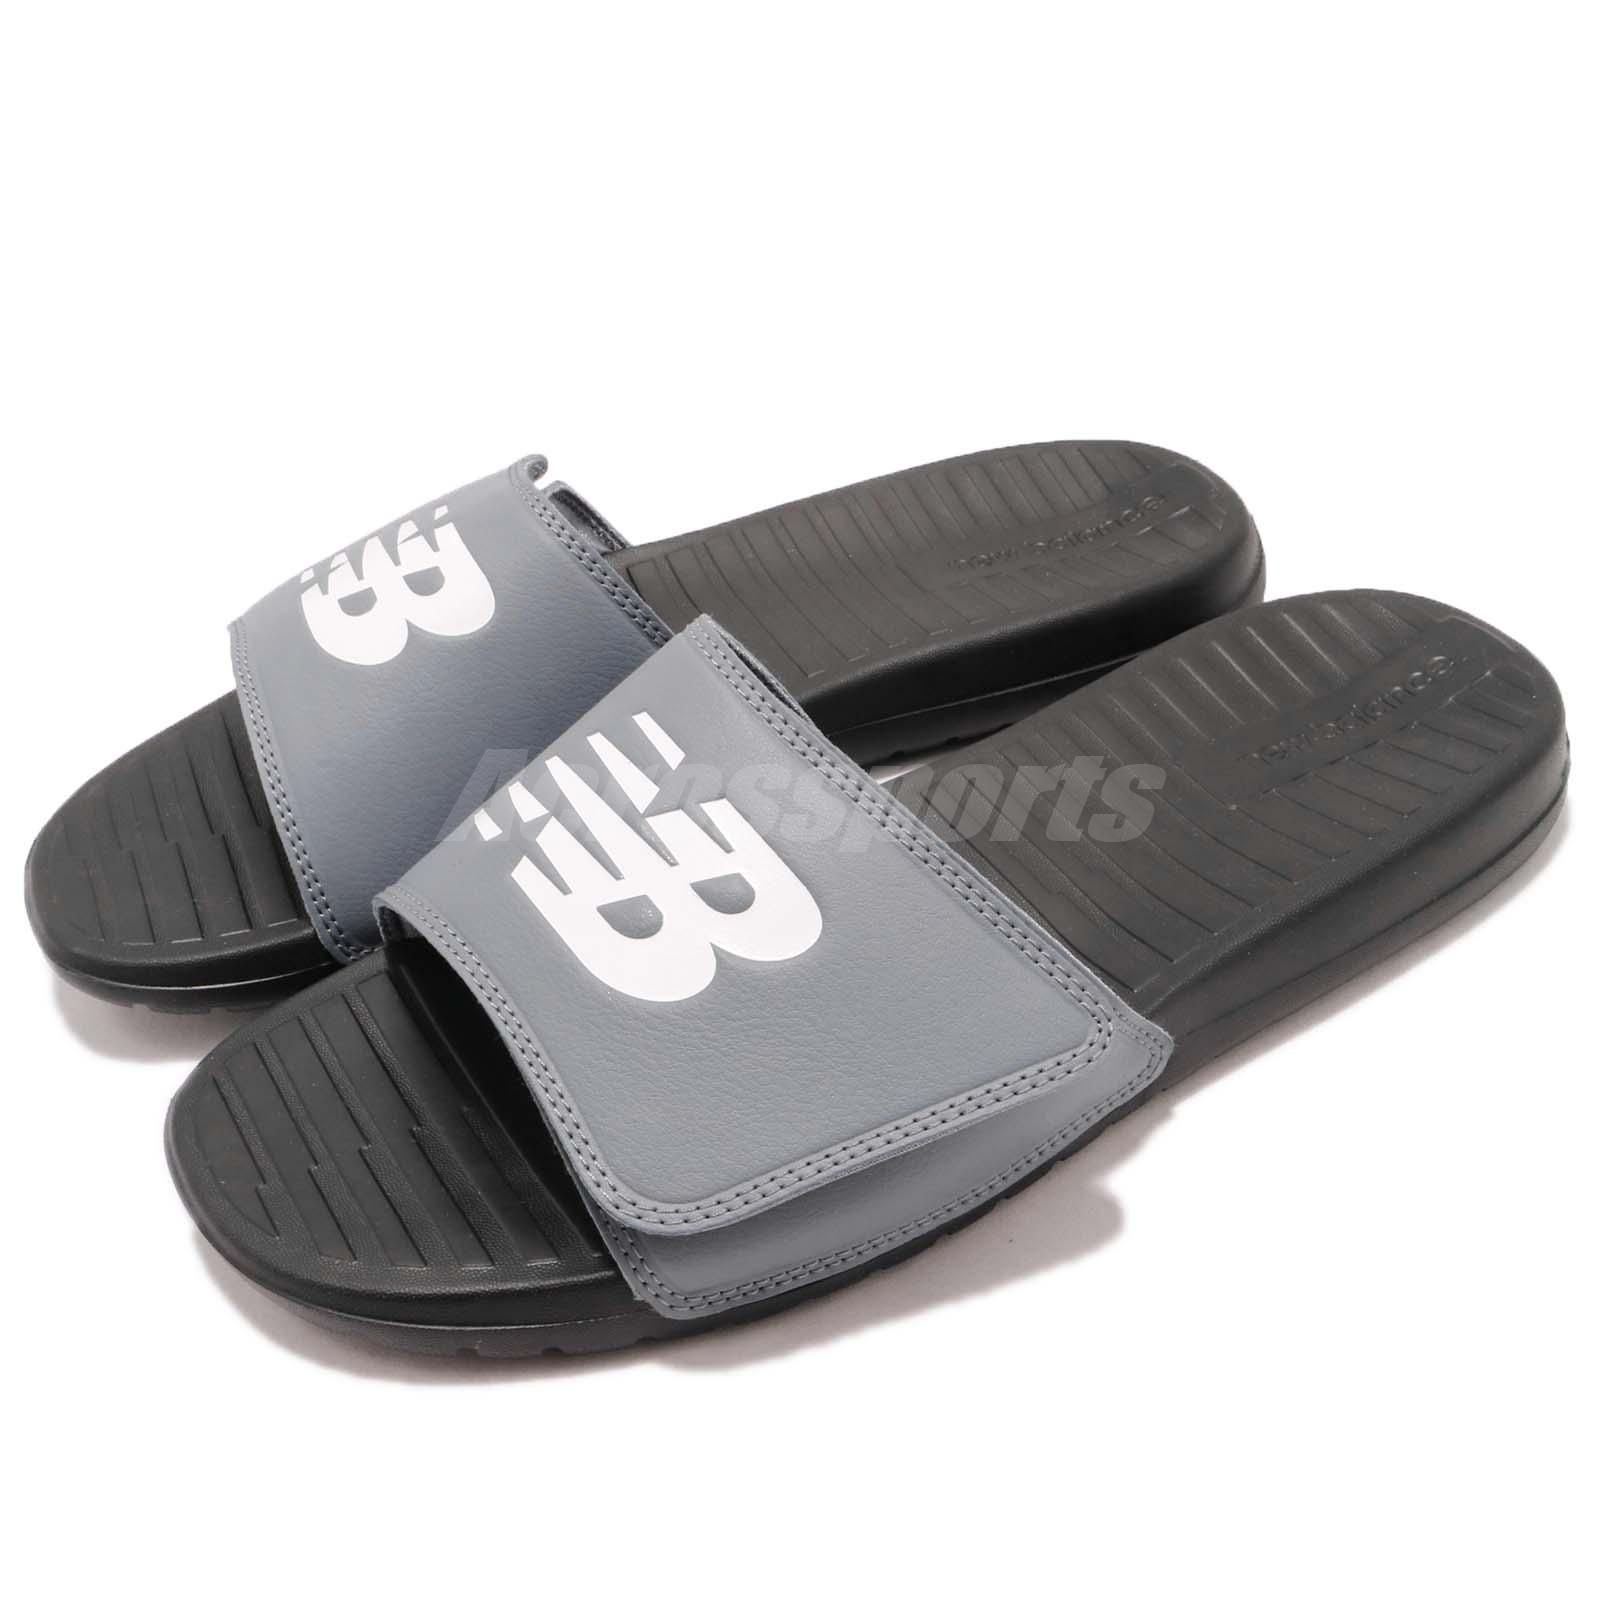 New Balance SD230GY D Grey Black Men Sports Sandal Slides Slippers SD230GYD